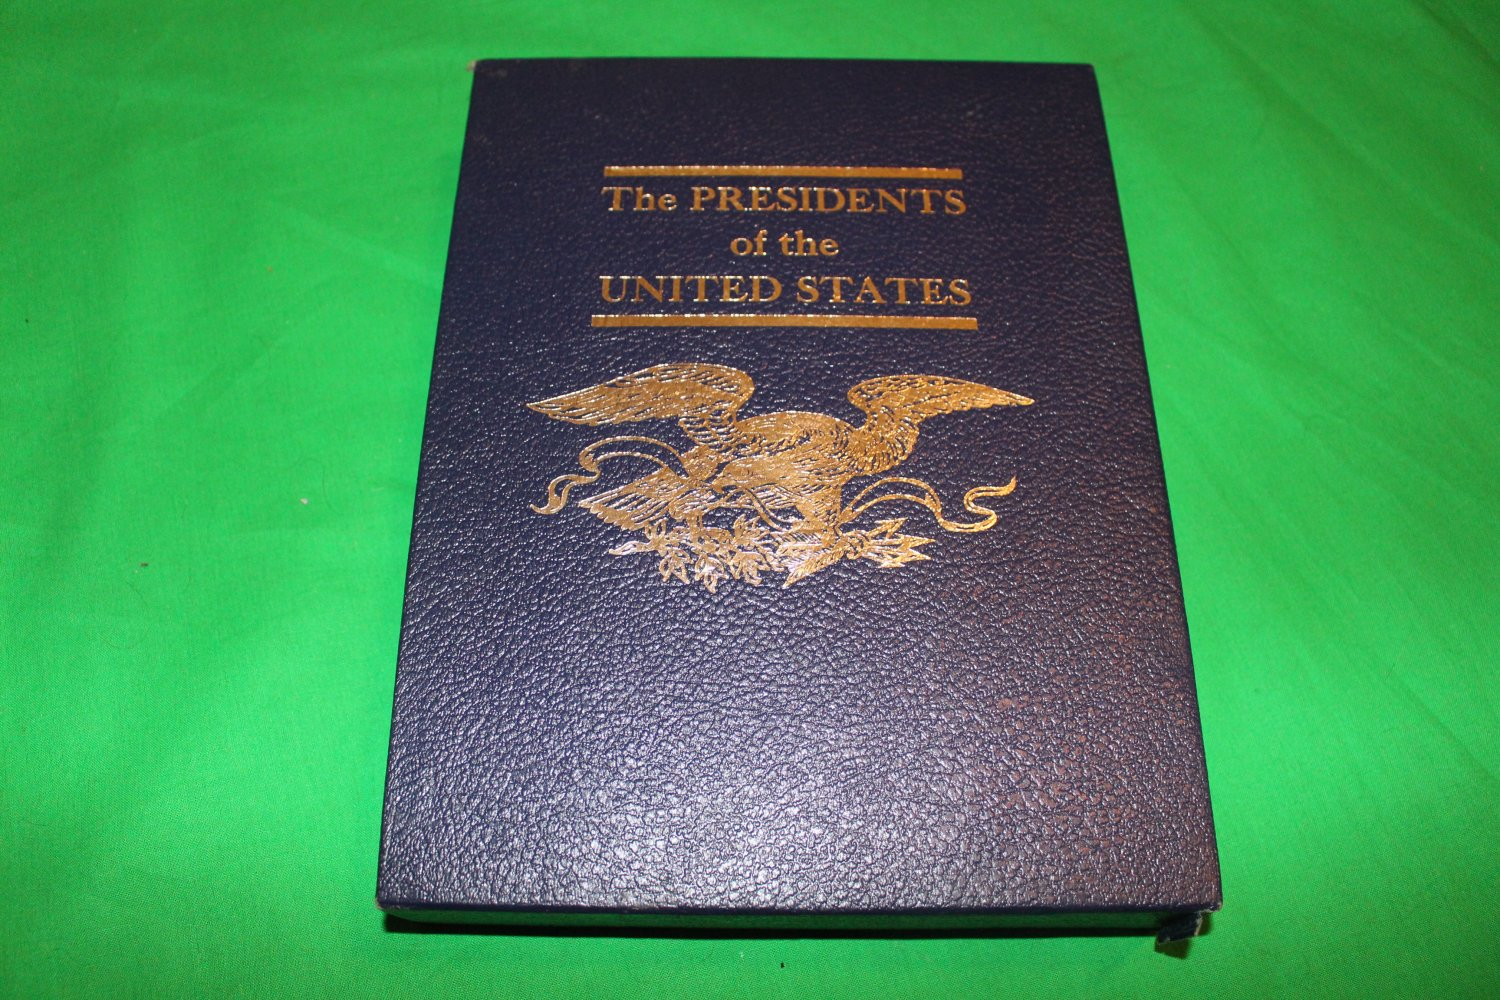 The Presidents of the United States by John and Alice Durant